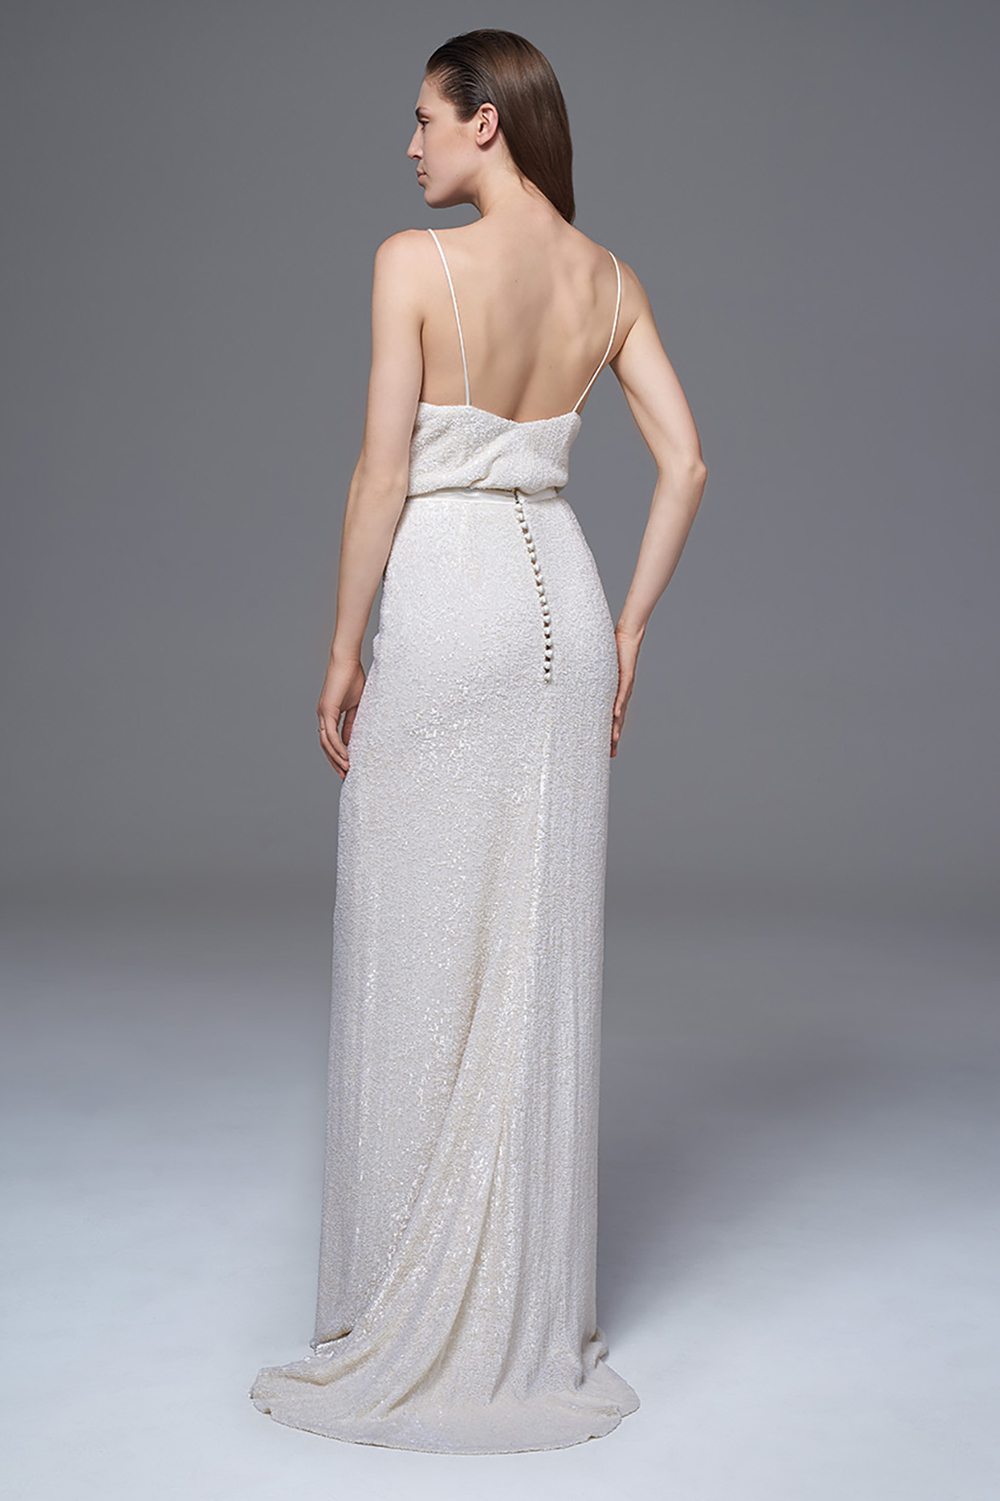 THE CELINE IVORY SEQUINNED CAMISOLE AND SKIRT TWO PIECE BRIDAL WEDDING DRESS BY HALFPENNY LONDON